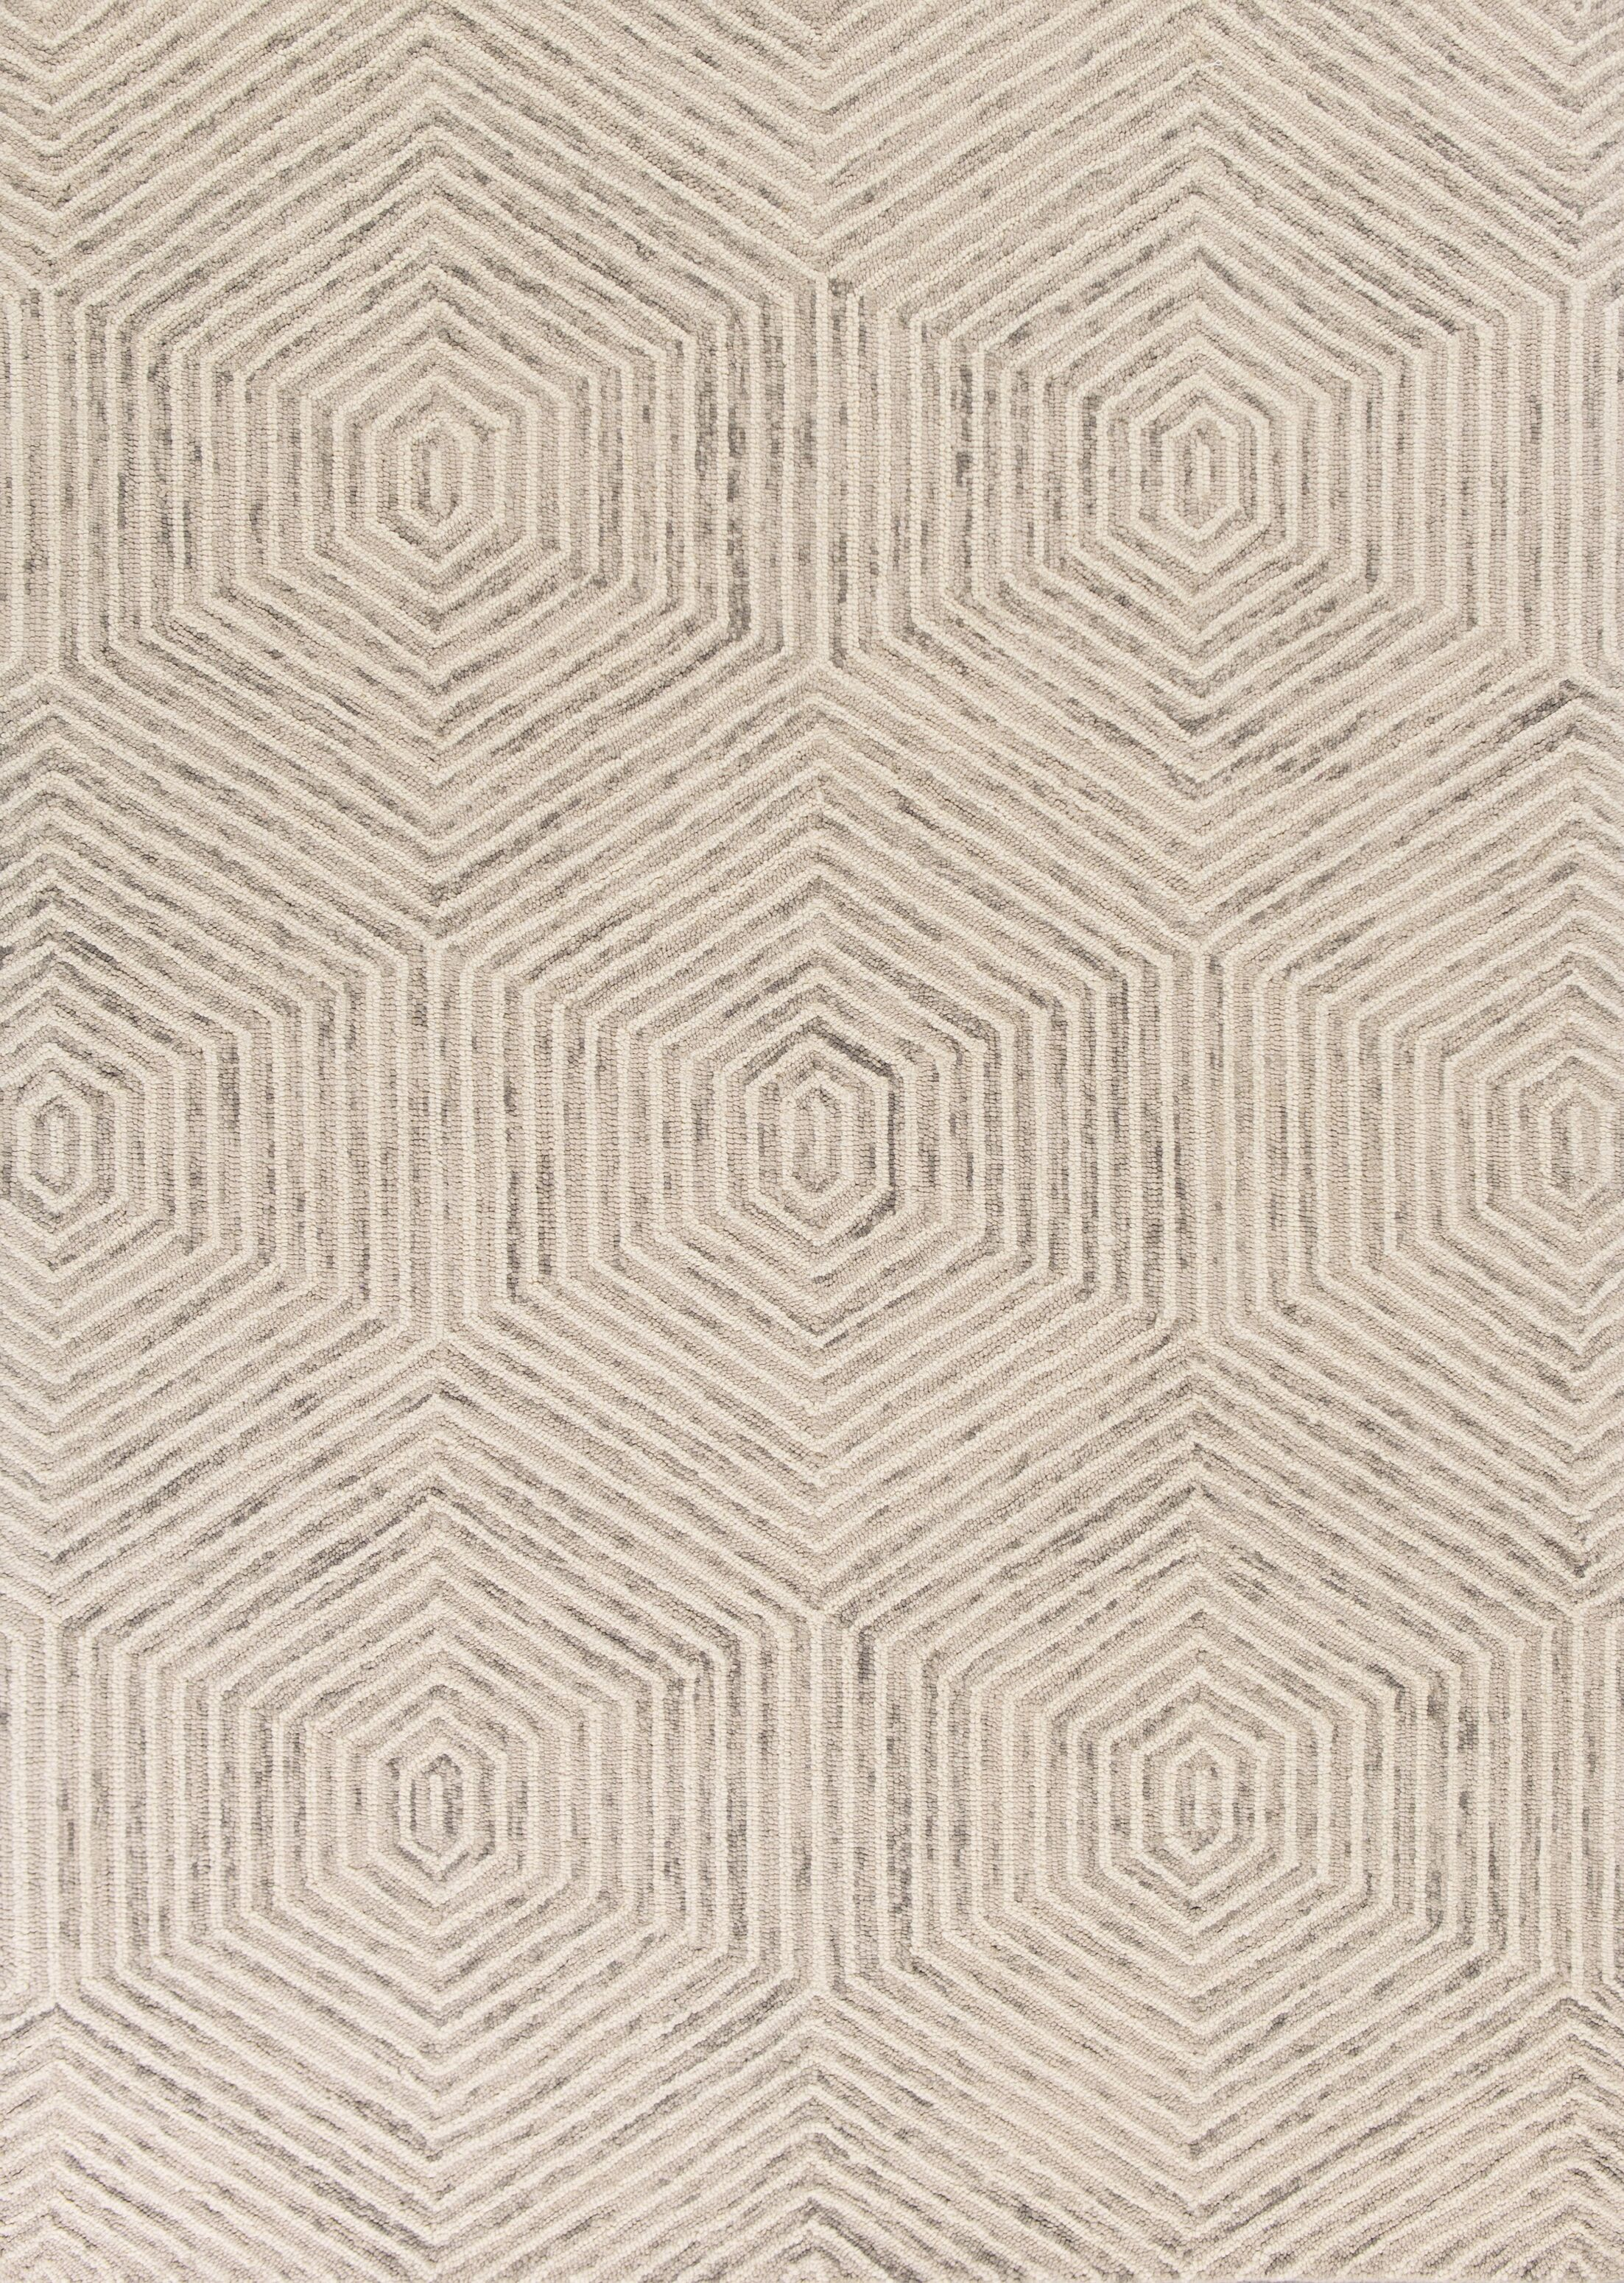 Suanne Hand-Tufted Ivory Area Rug Rug Size: 3'3